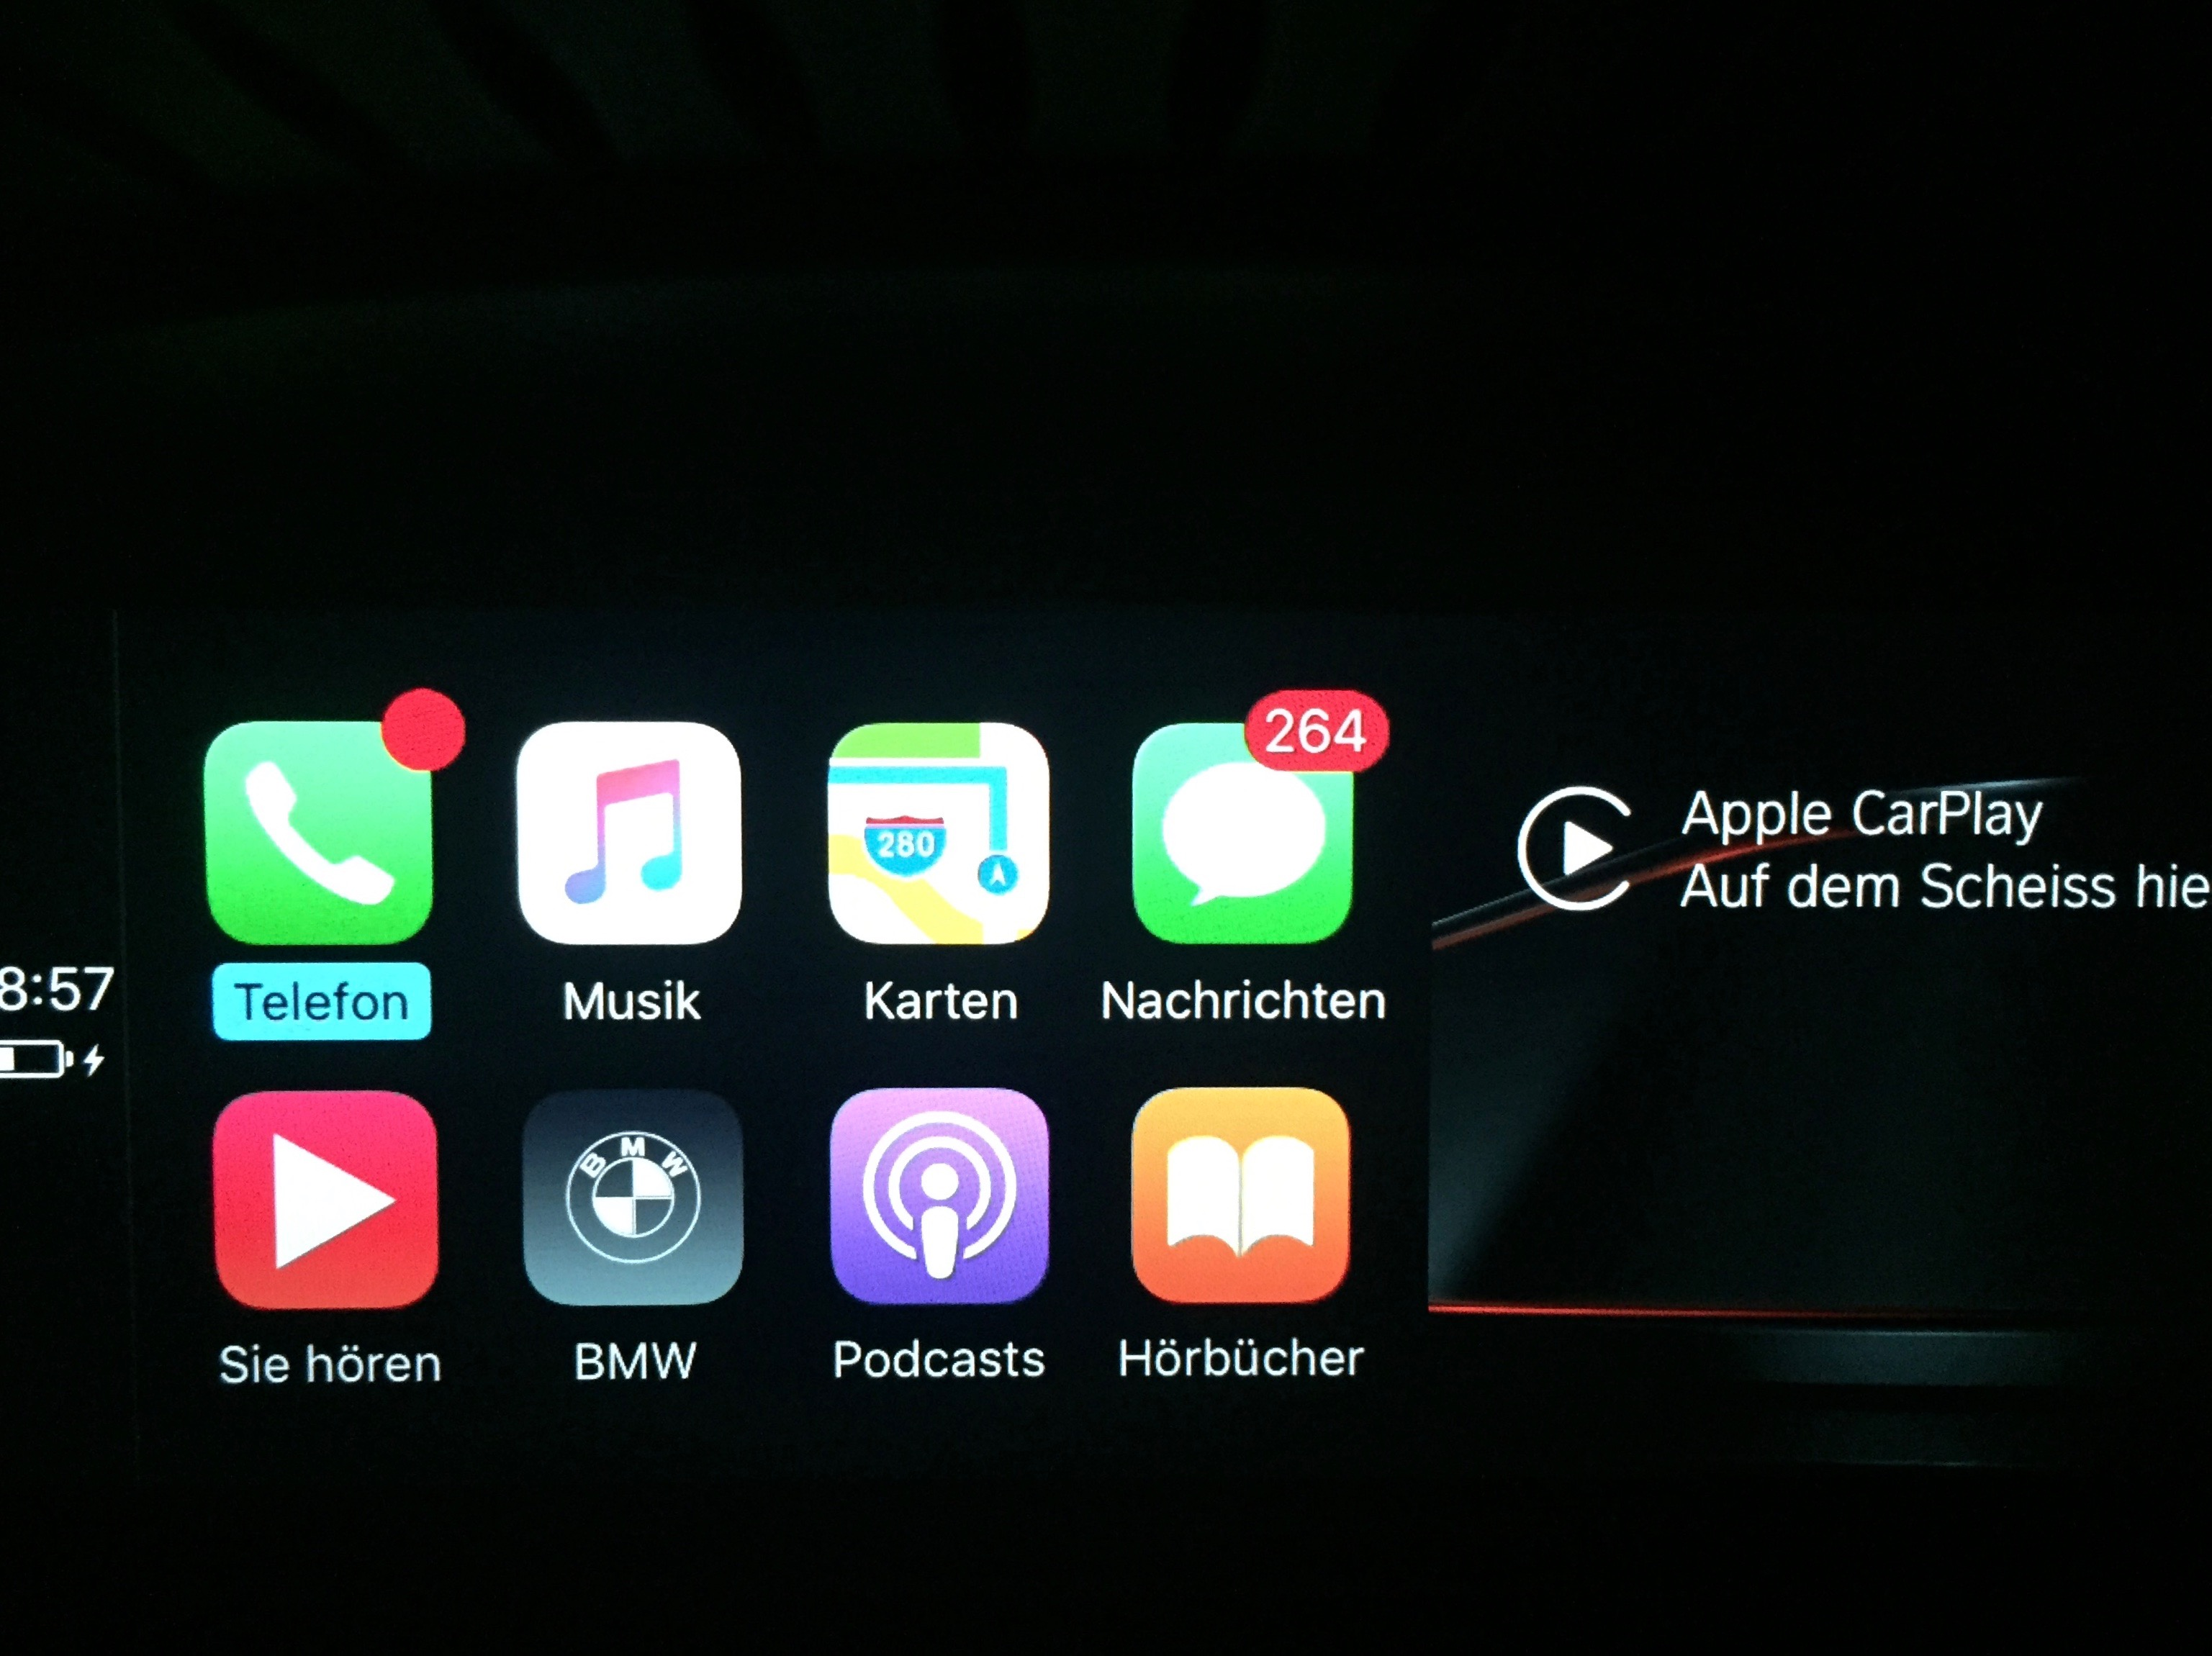 CARPLAY APPLE BMW CONNECTED